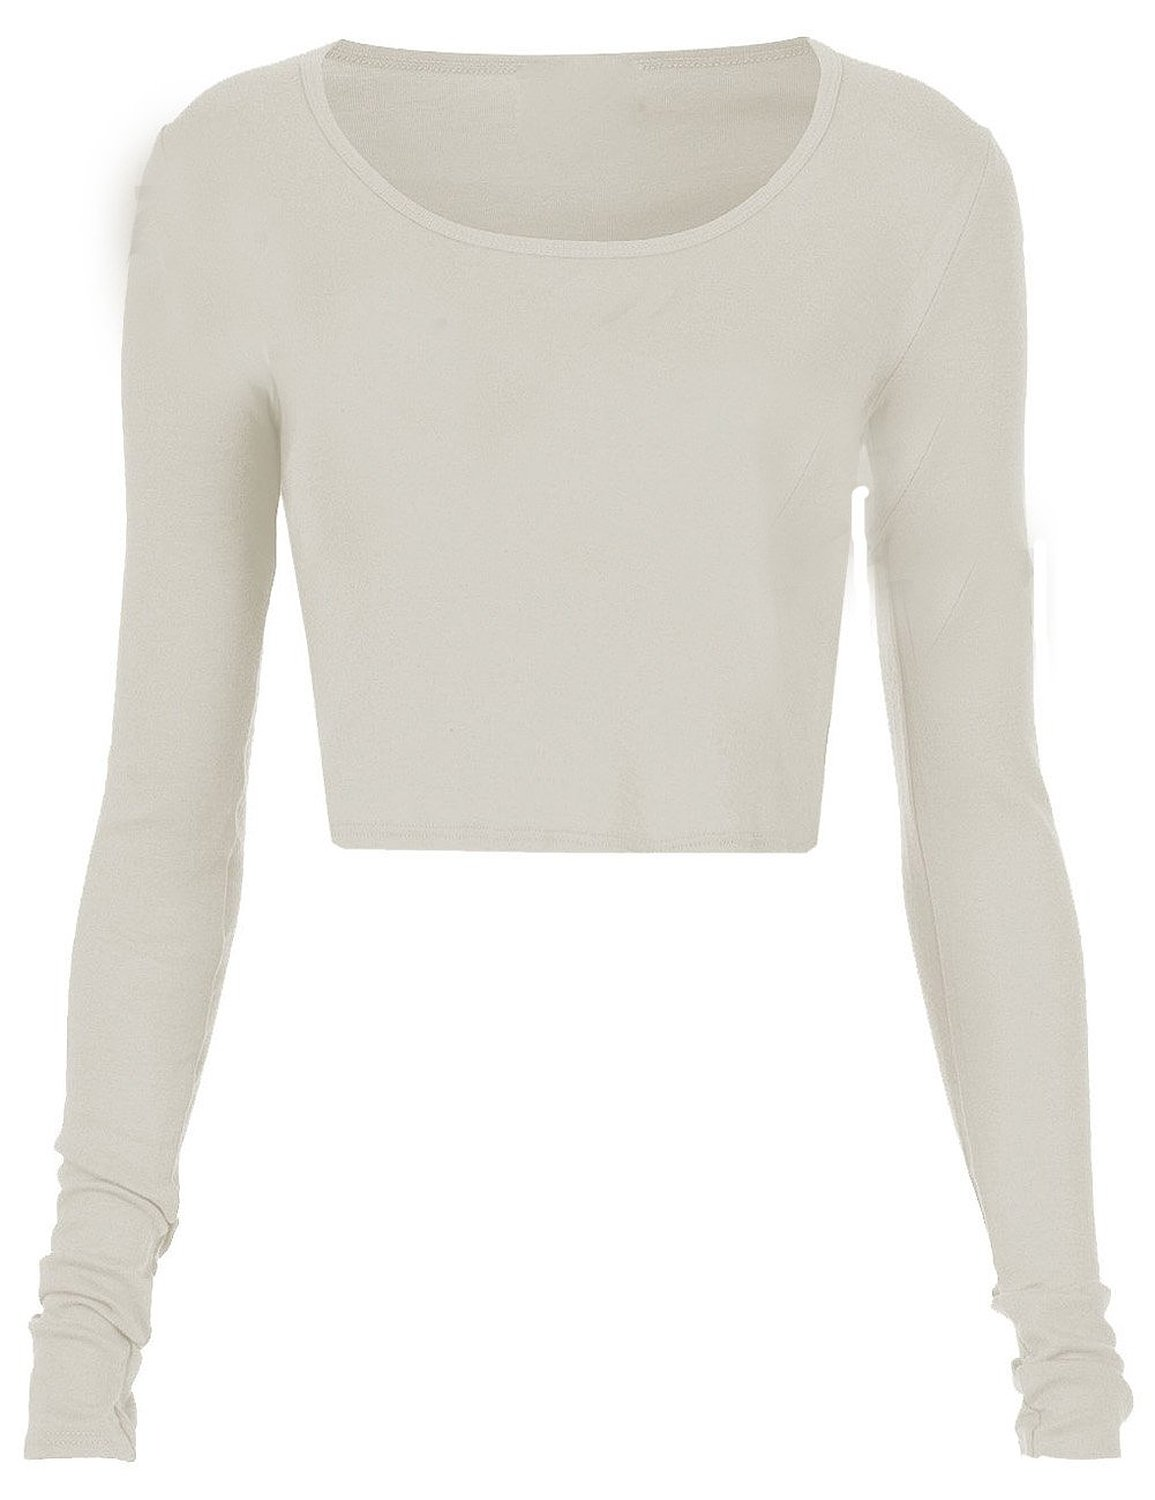 Fashion womens long sleeve crop top round neck t shirt blouse at amazon women's clothing store: